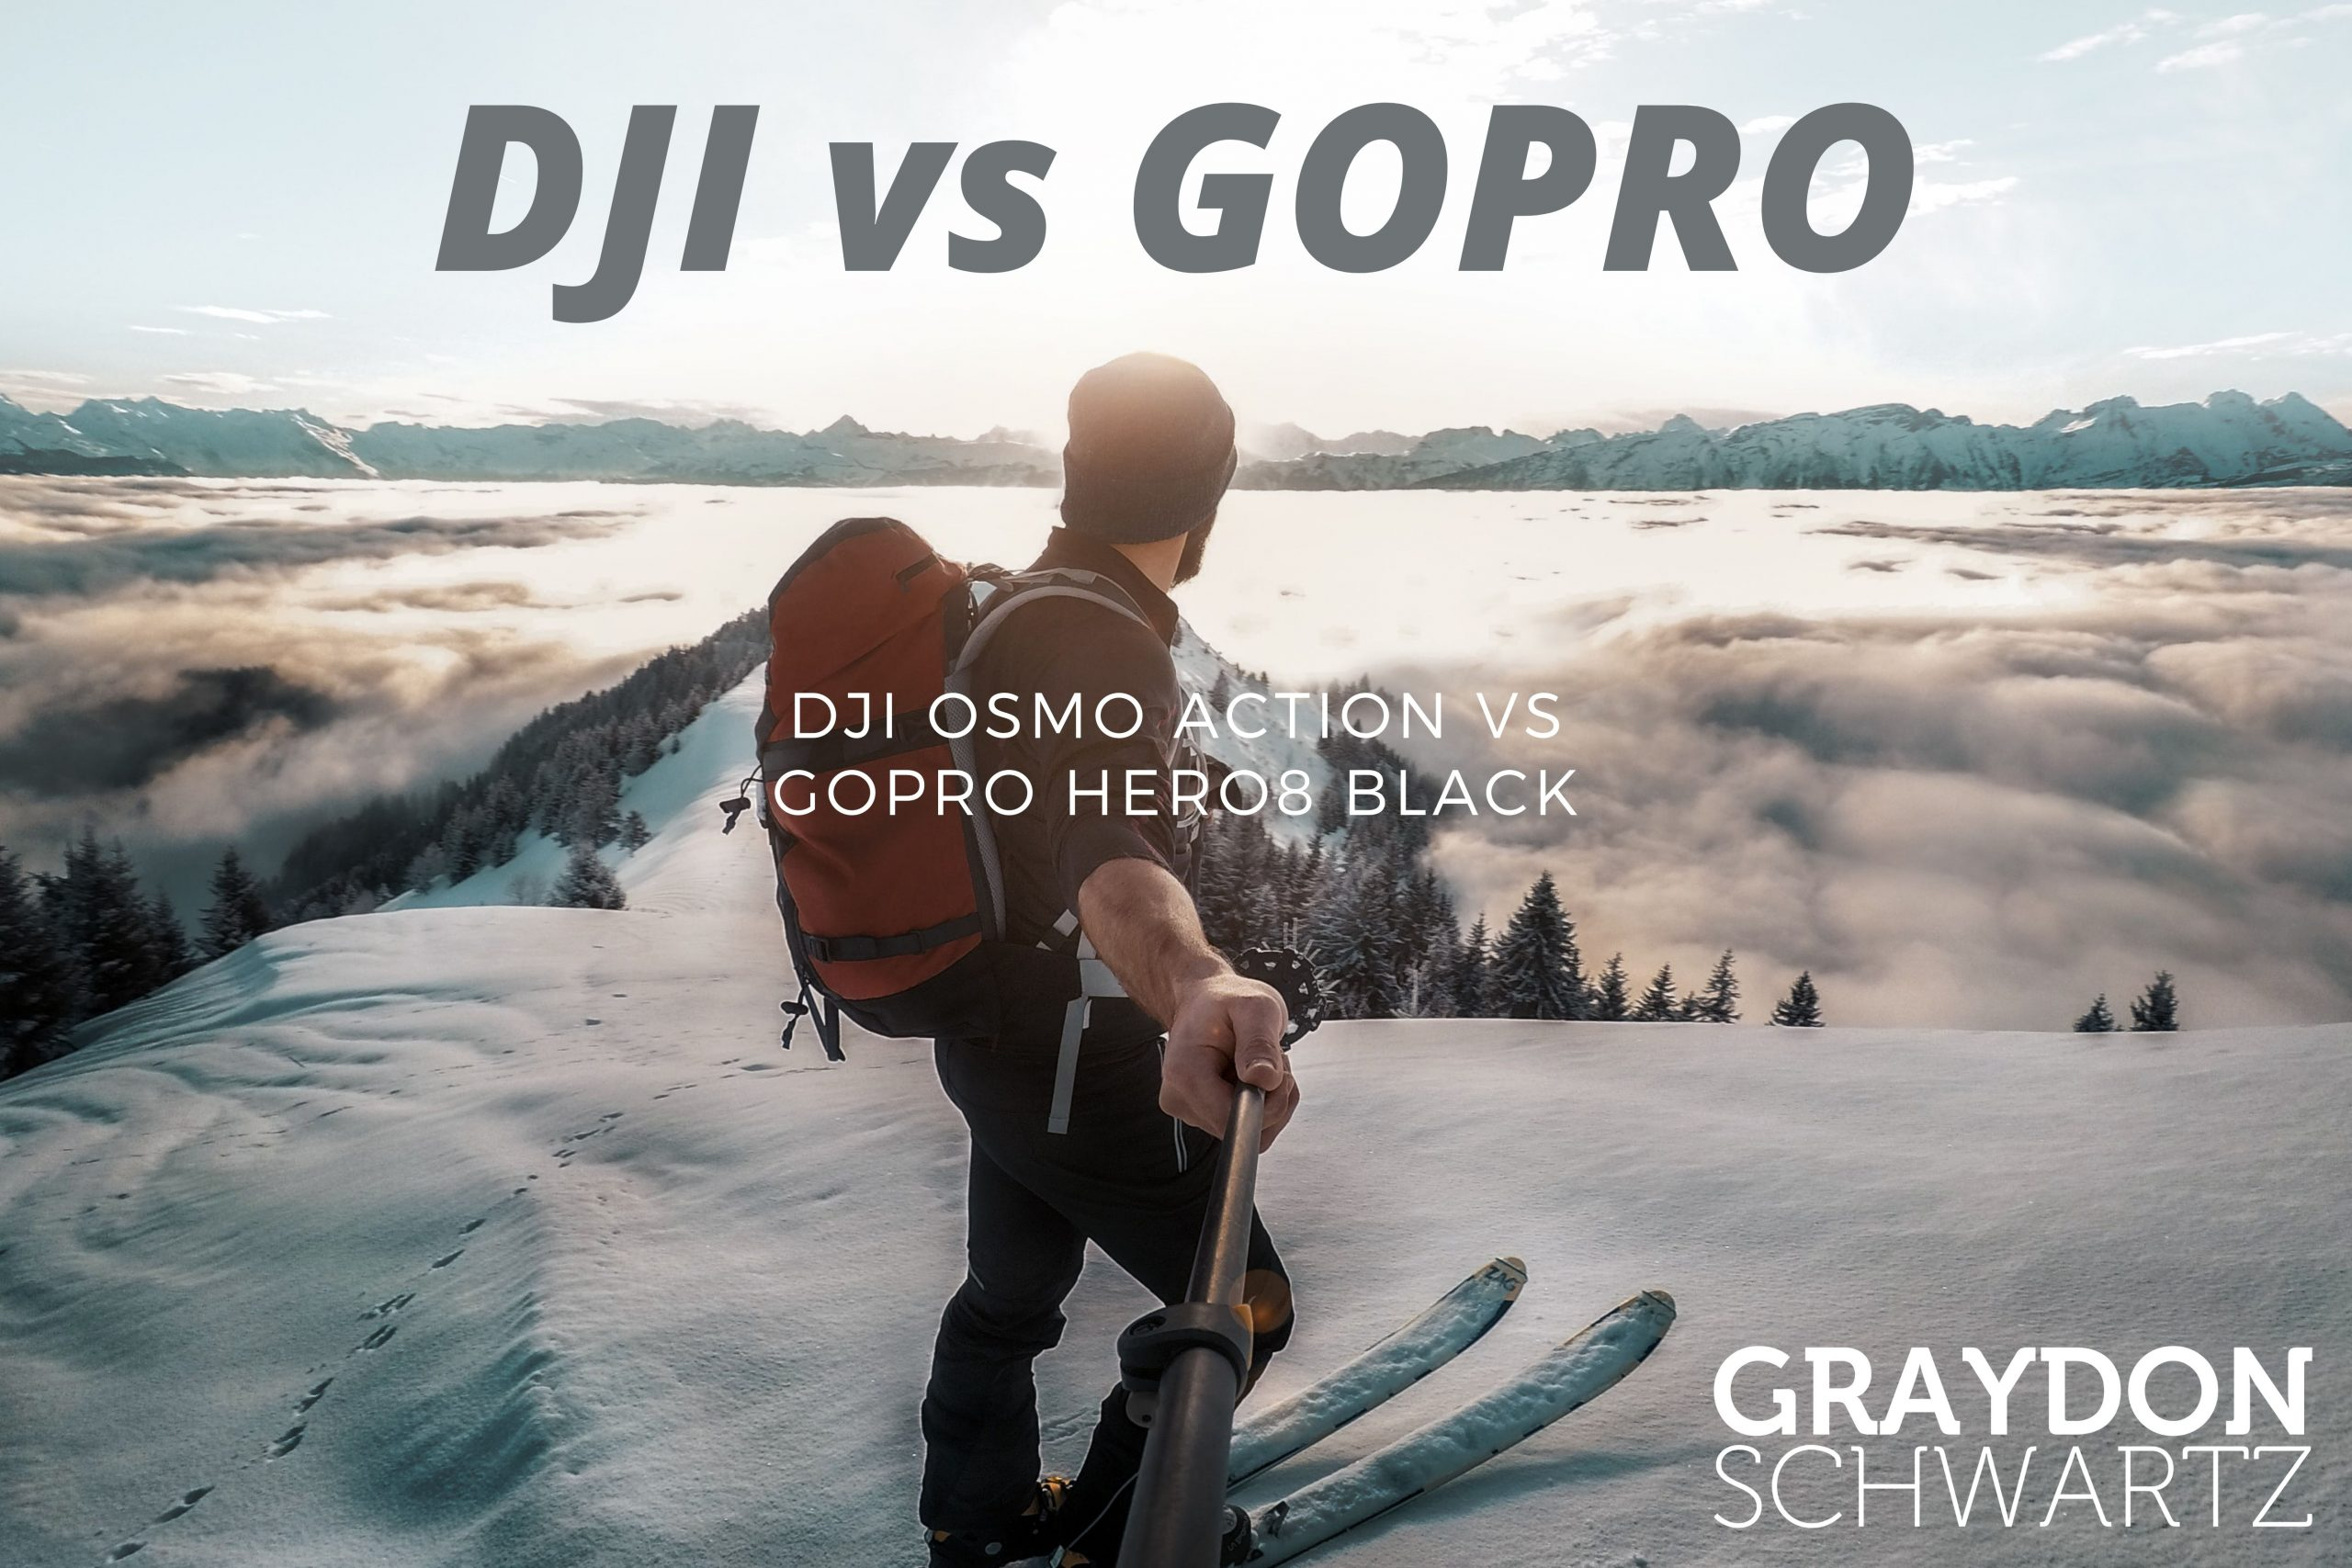 DJI Osmo Action vs GoPro Hero8 Black